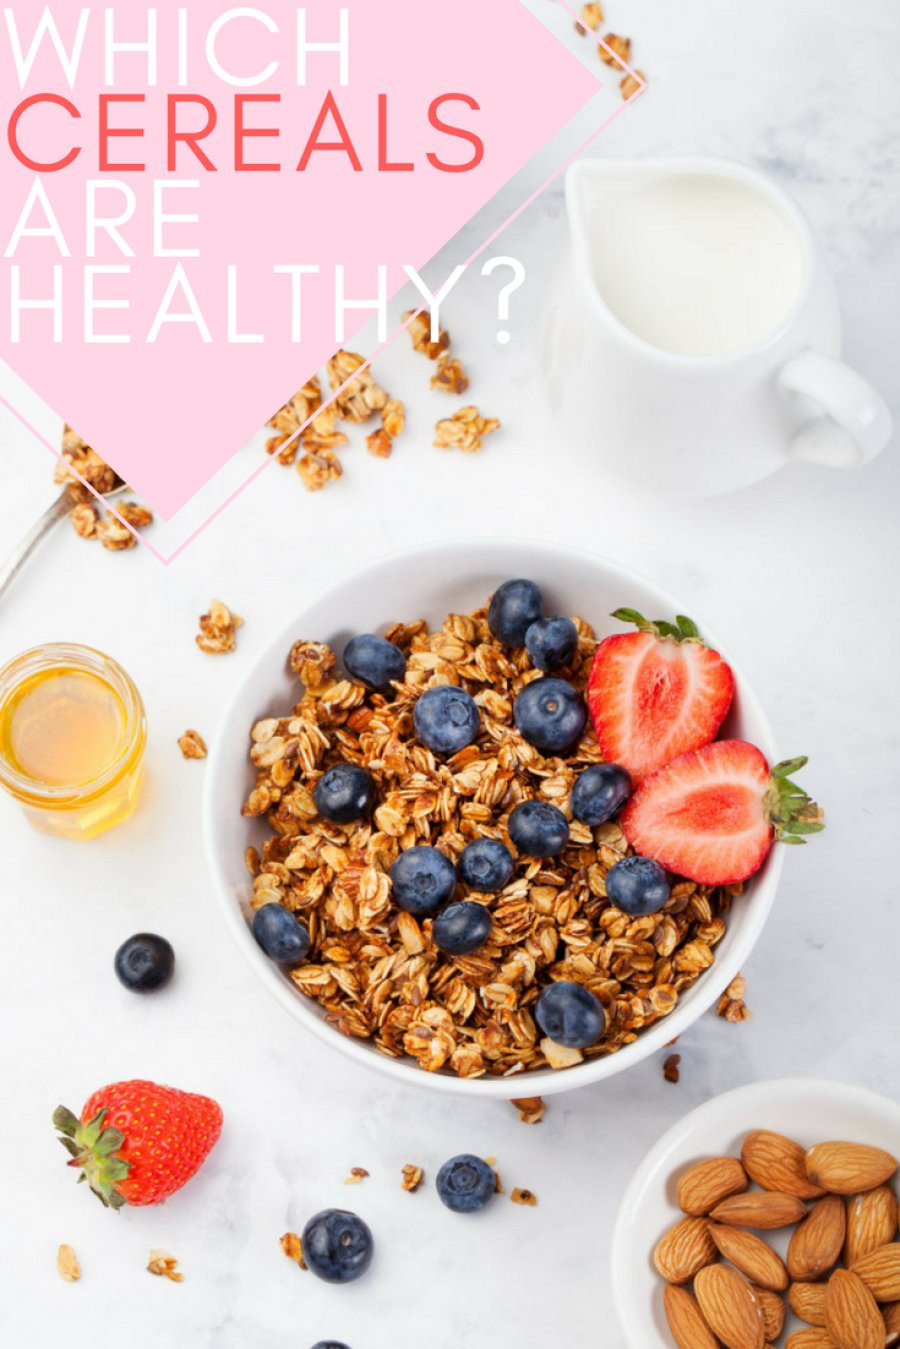 Healthy Breakfast Cereal  Here Are The Breakfast Cereals That Are Actually Healthy